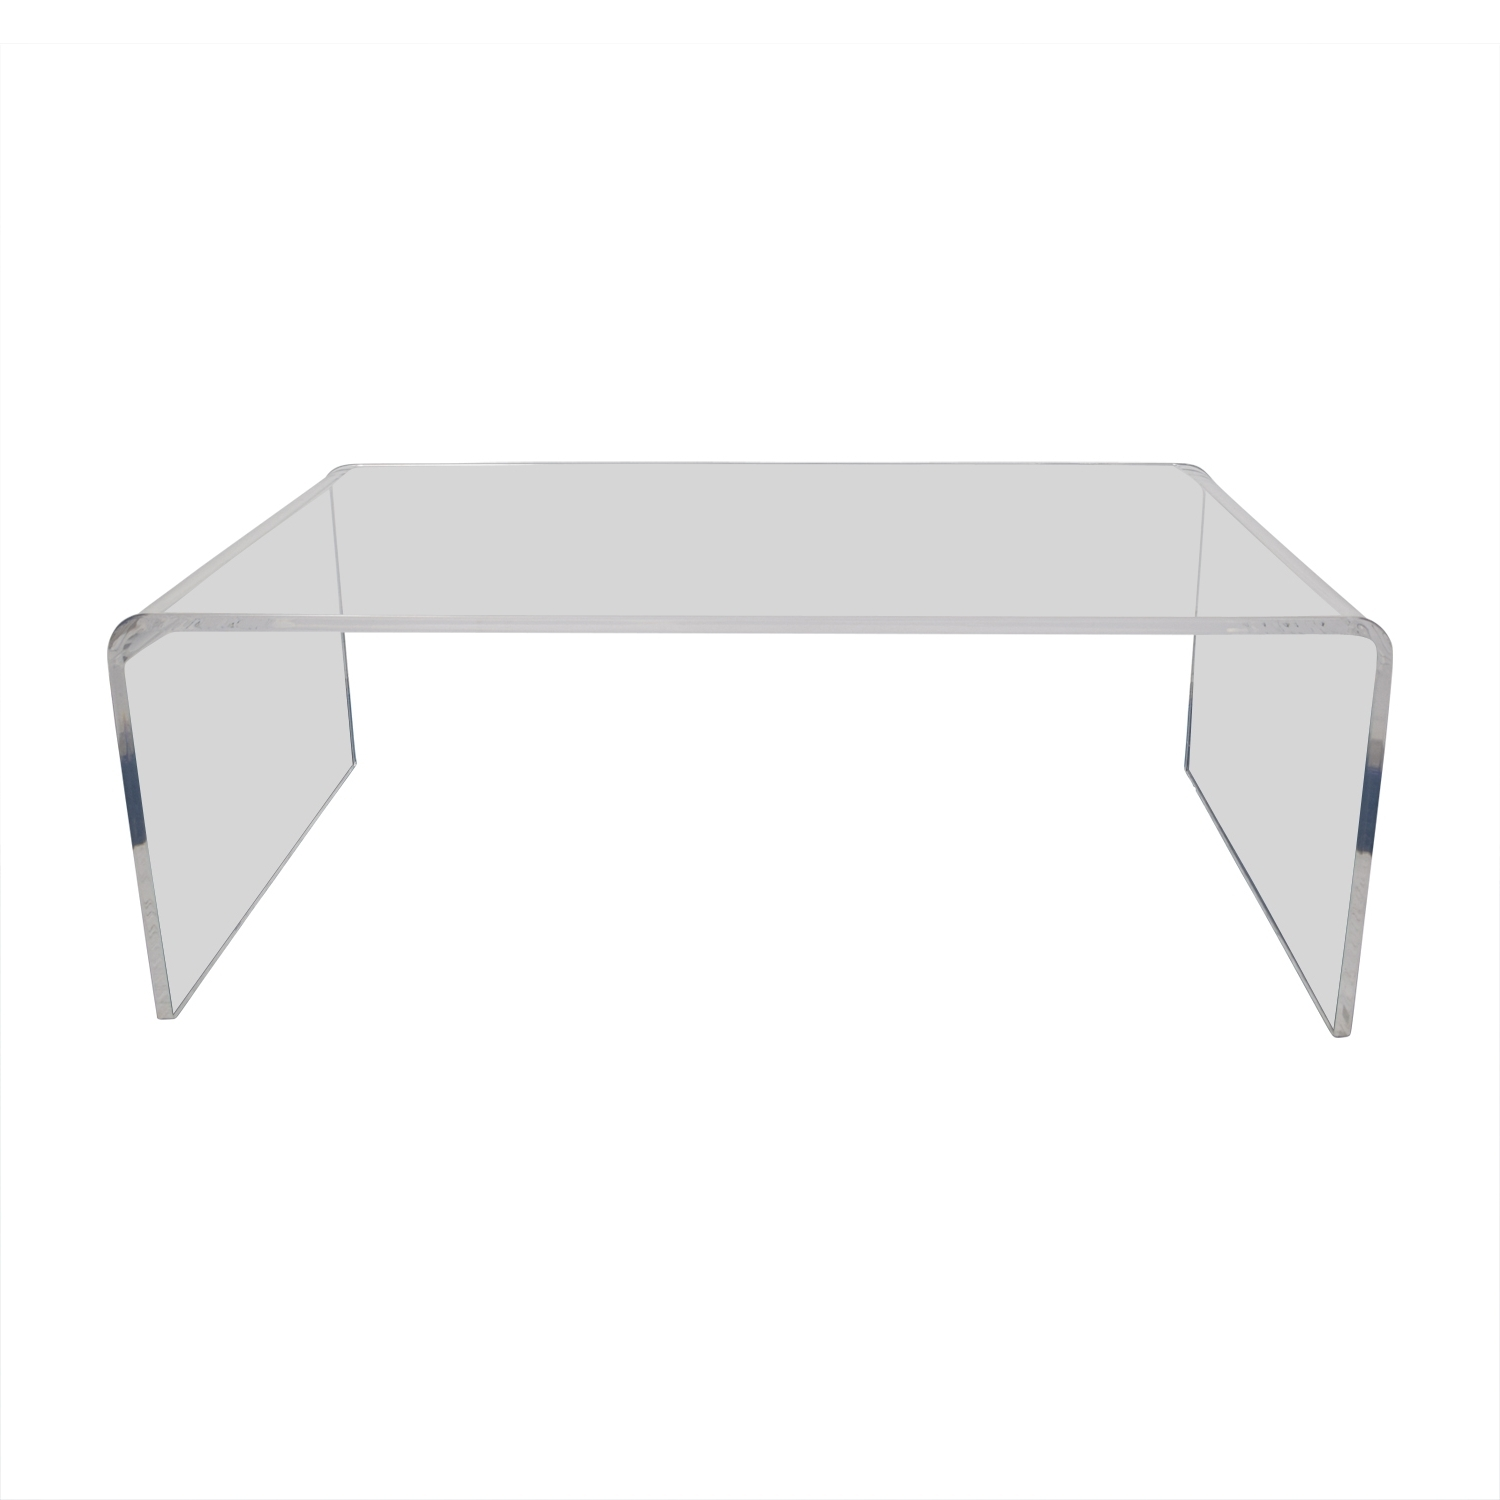 [%recent Peekaboo Acrylic Coffee Tables Inside 60% Off – Cb2 Cb2 Peekaboo Acrylic Coffee Table / Tables|60% Off – Cb2 Cb2 Peekaboo Acrylic Coffee Table / Tables Throughout Trendy Peekaboo Acrylic Coffee Tables%] (View 6 of 20)